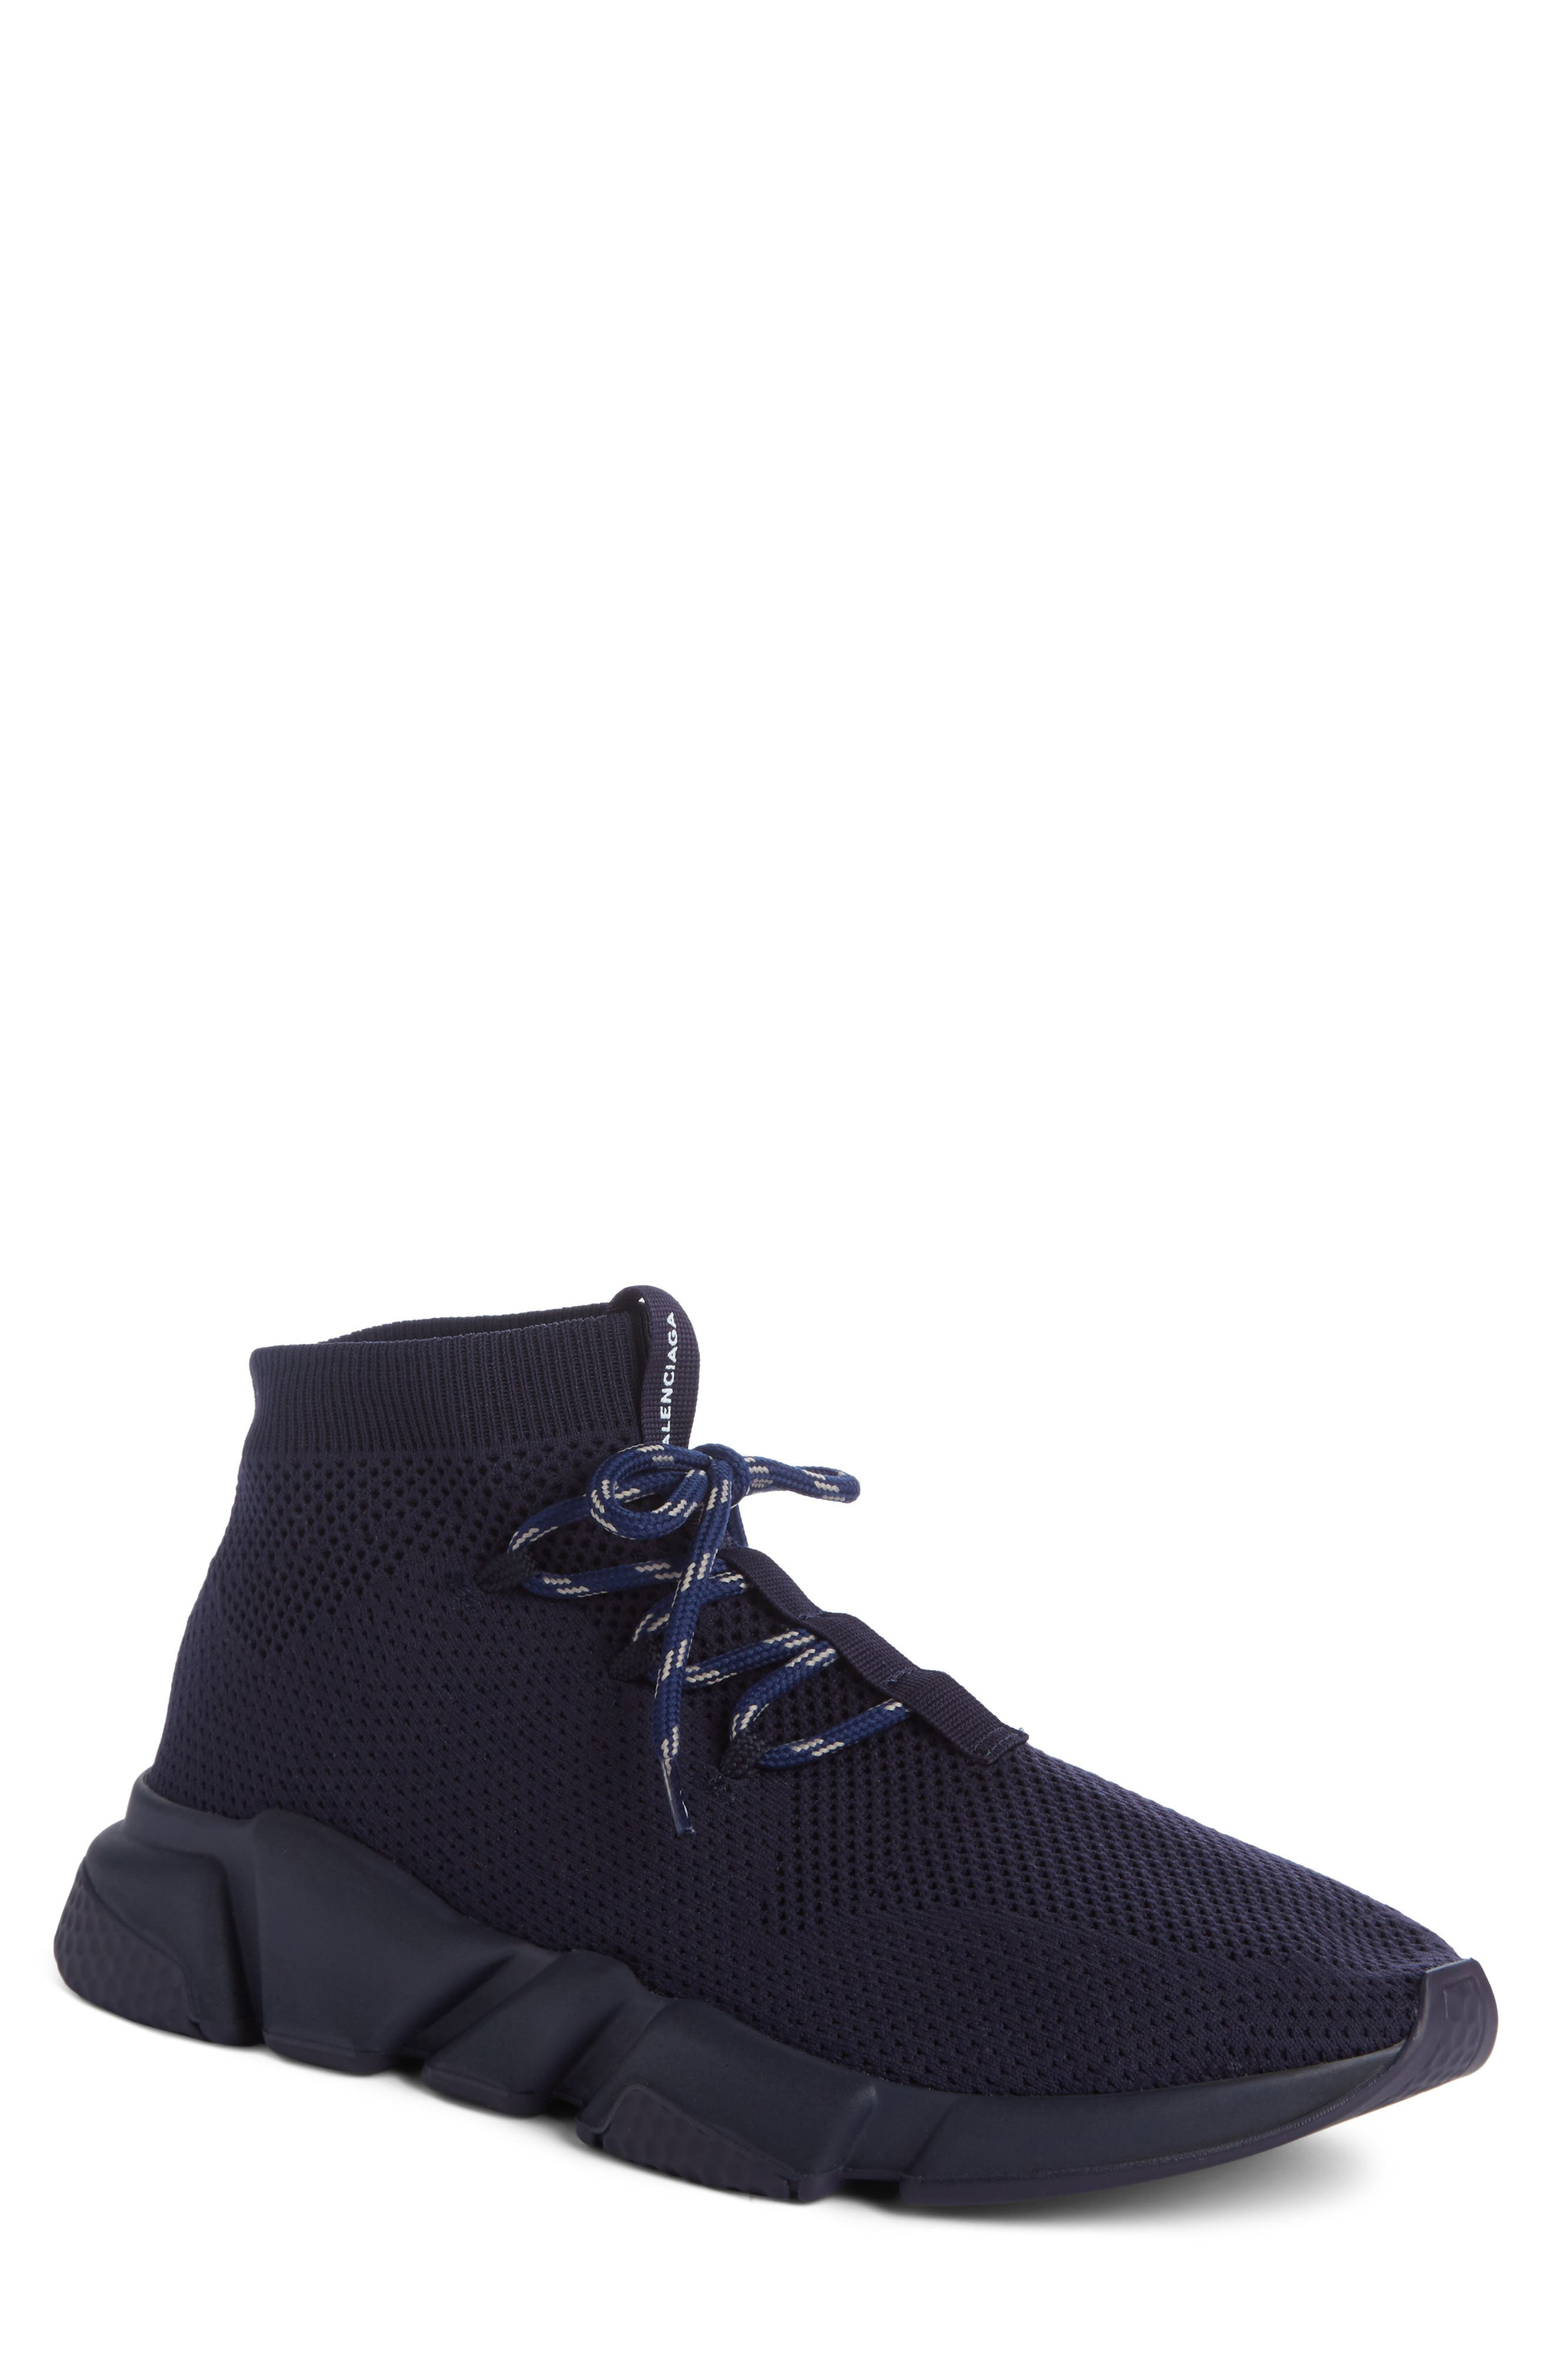 Mid-Top Sneaker,                         Main,                         color, Blue Marine/Blanc White